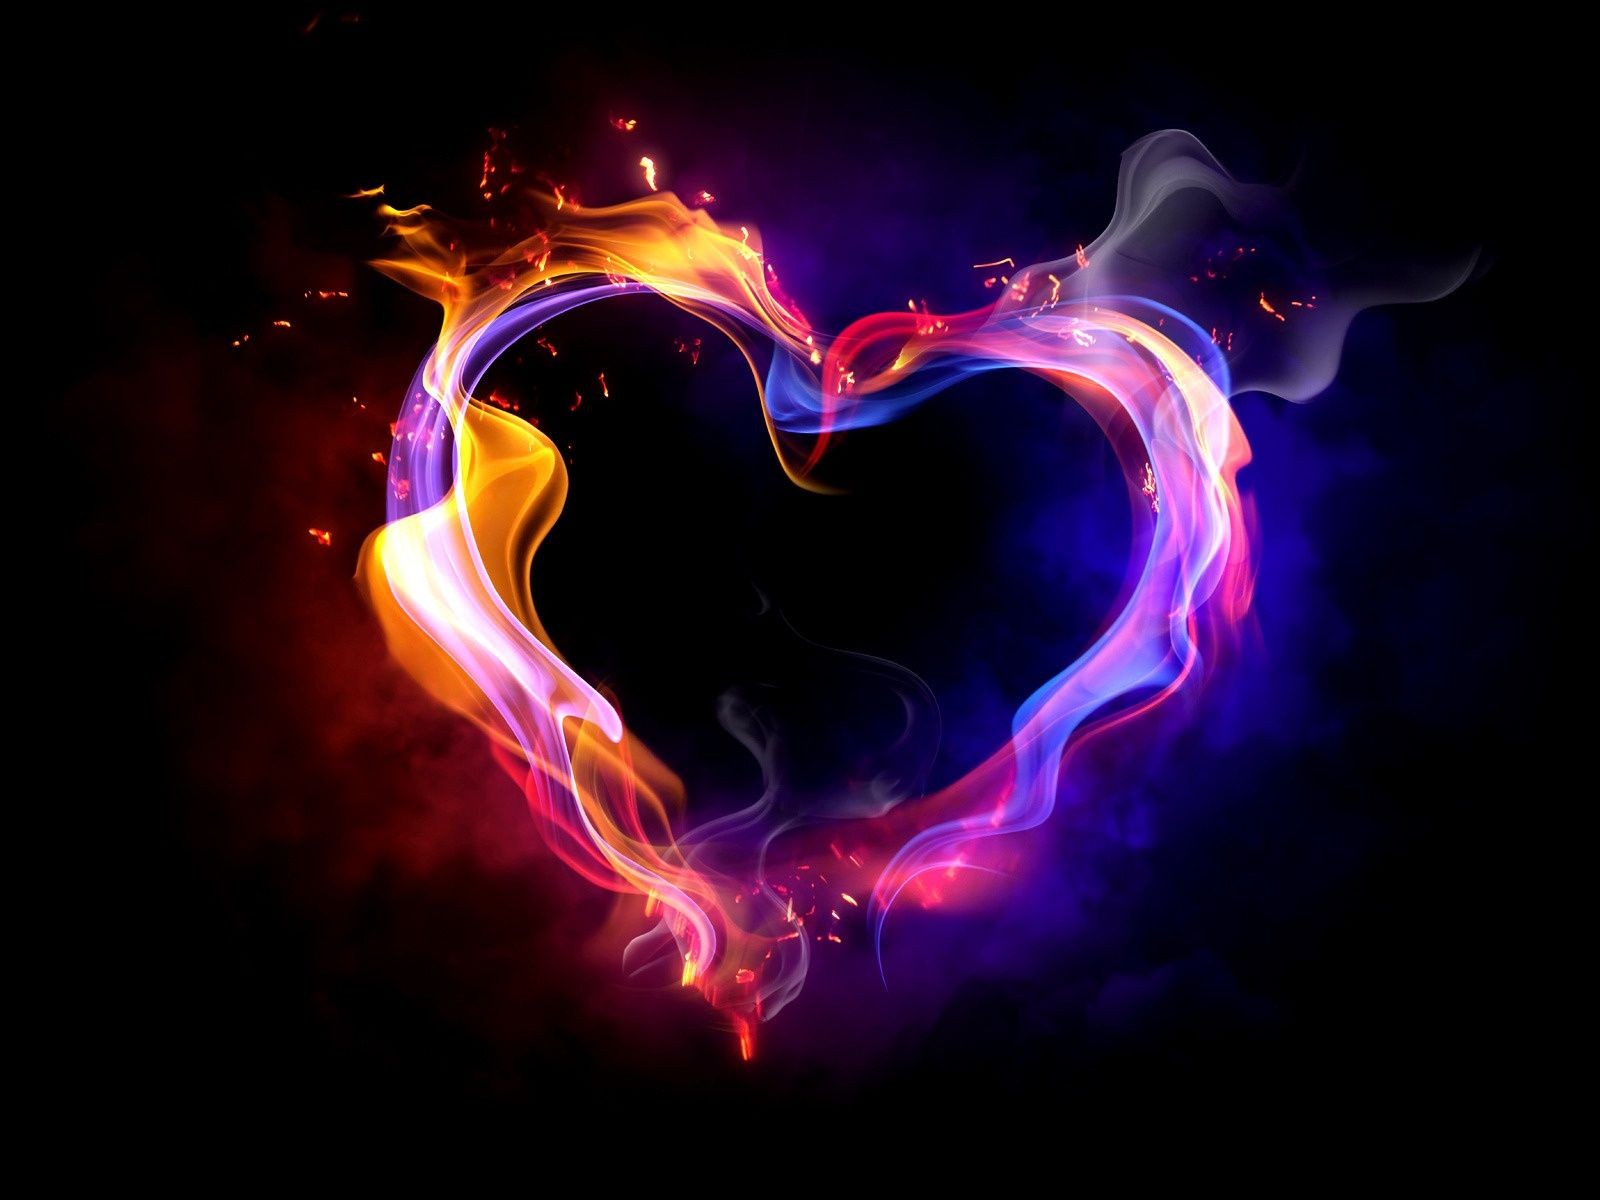 Hd Wallpaper 3d Fire Love Free 449 High Definition